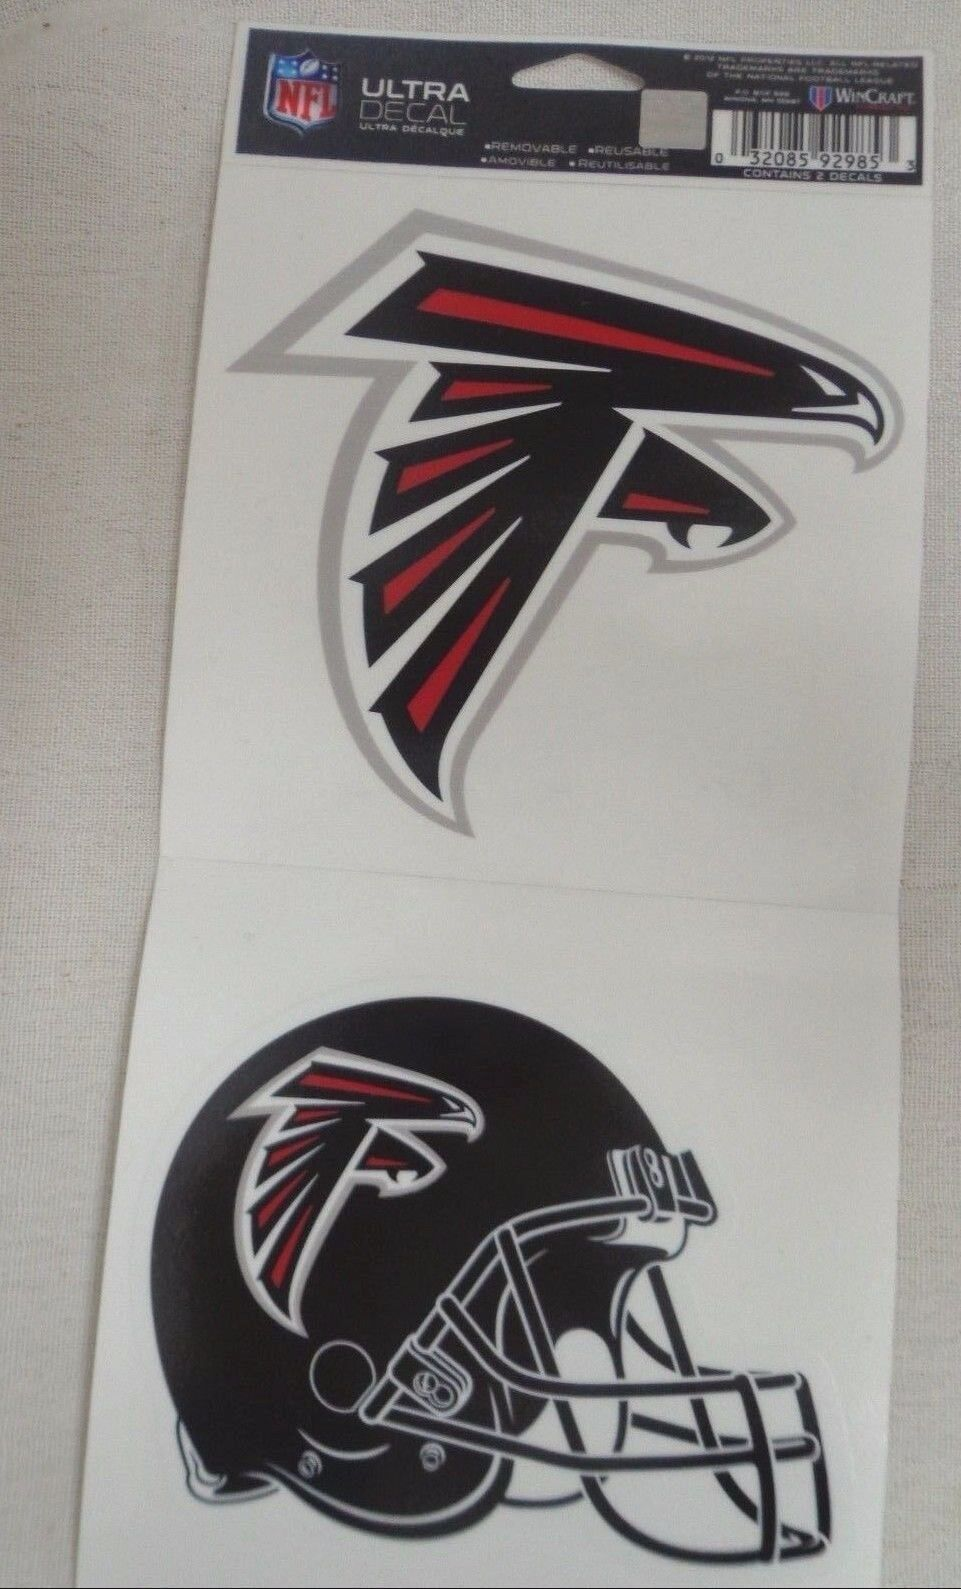 NFL Ultra Decals 2 Pack Set Removable Reusable Sticker Wincraft Atlanta Falcons